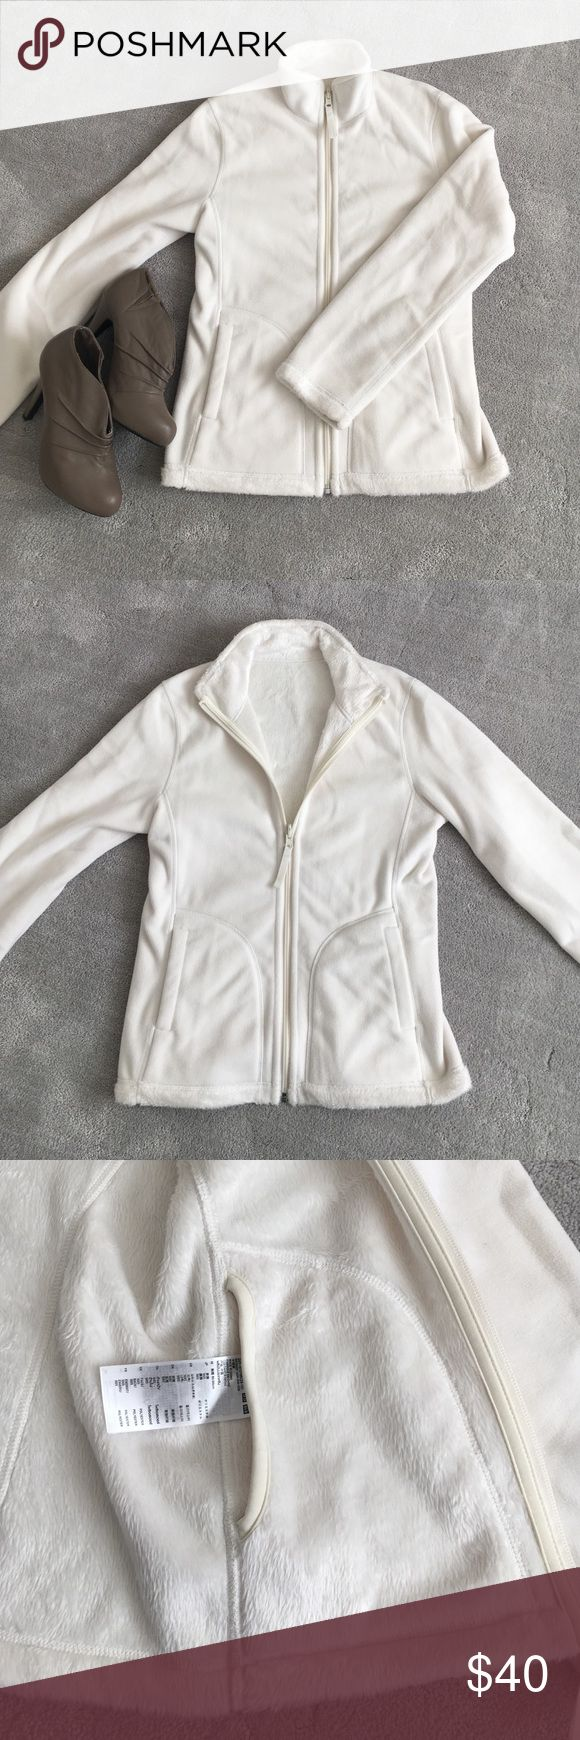 ❄️ NWOT Uniqlo fleece lined zip jacket Beautiful soft jacket to keep you warm this chilly winter! Brand new condition. Jacket features two exterior pockets as well as two interior pockets. The lining is extremely soft like being enveloped in a stylish blanket 😌 Fits like a small-medium Uniqlo Jackets & Coats